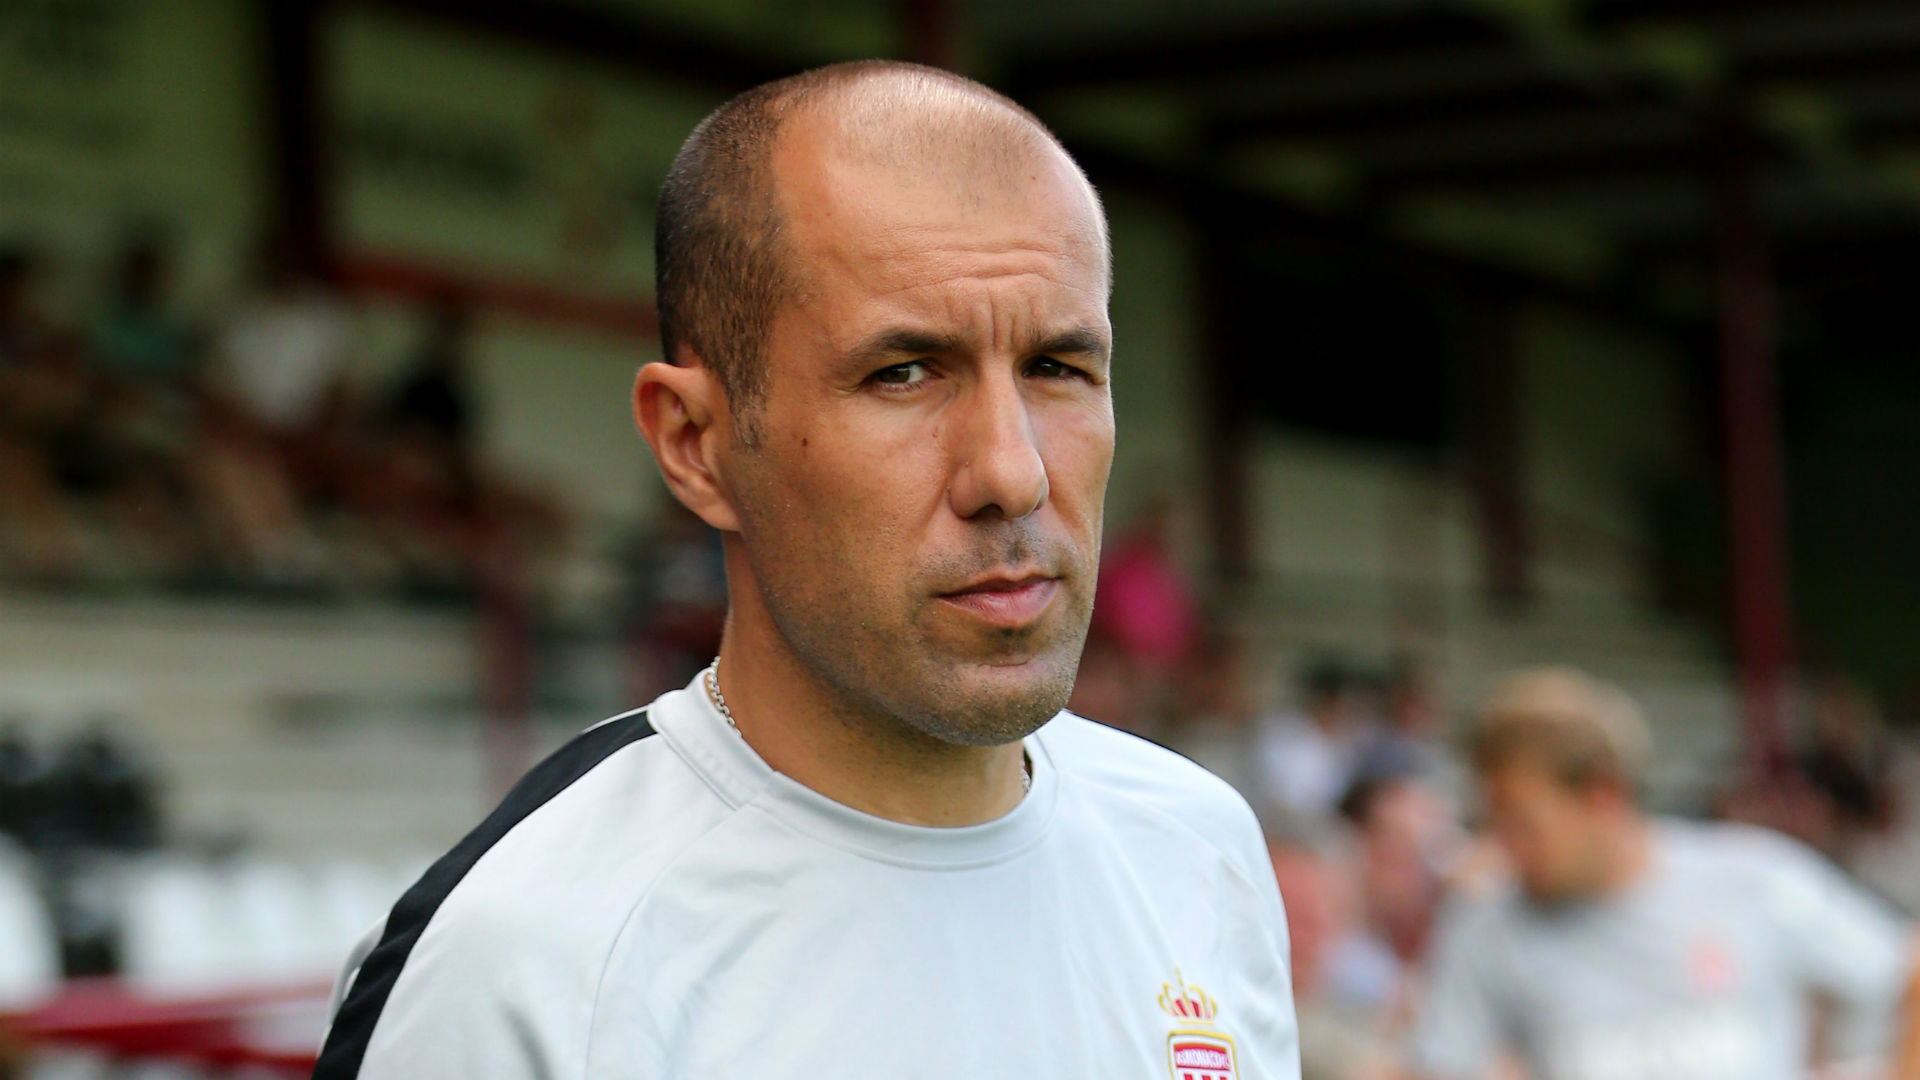 I don't need a pat on the back from the board – Jardim keeping his cool amid uncertain Monaco future